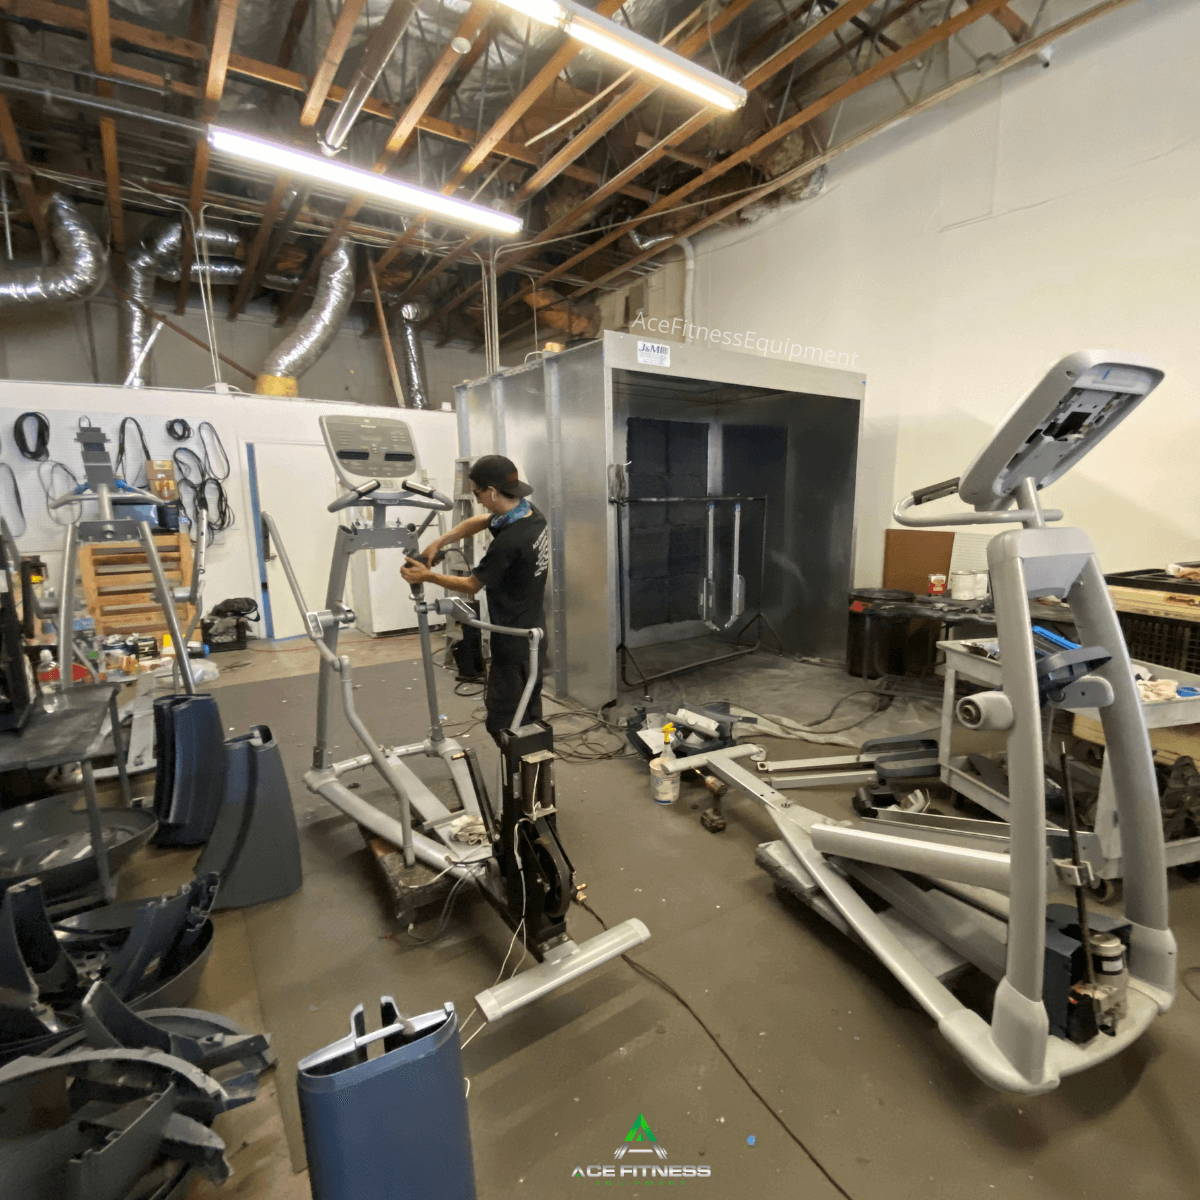 Refurbished Precor AMT 100i Elliptical in our warehouse in the Long beach CA area